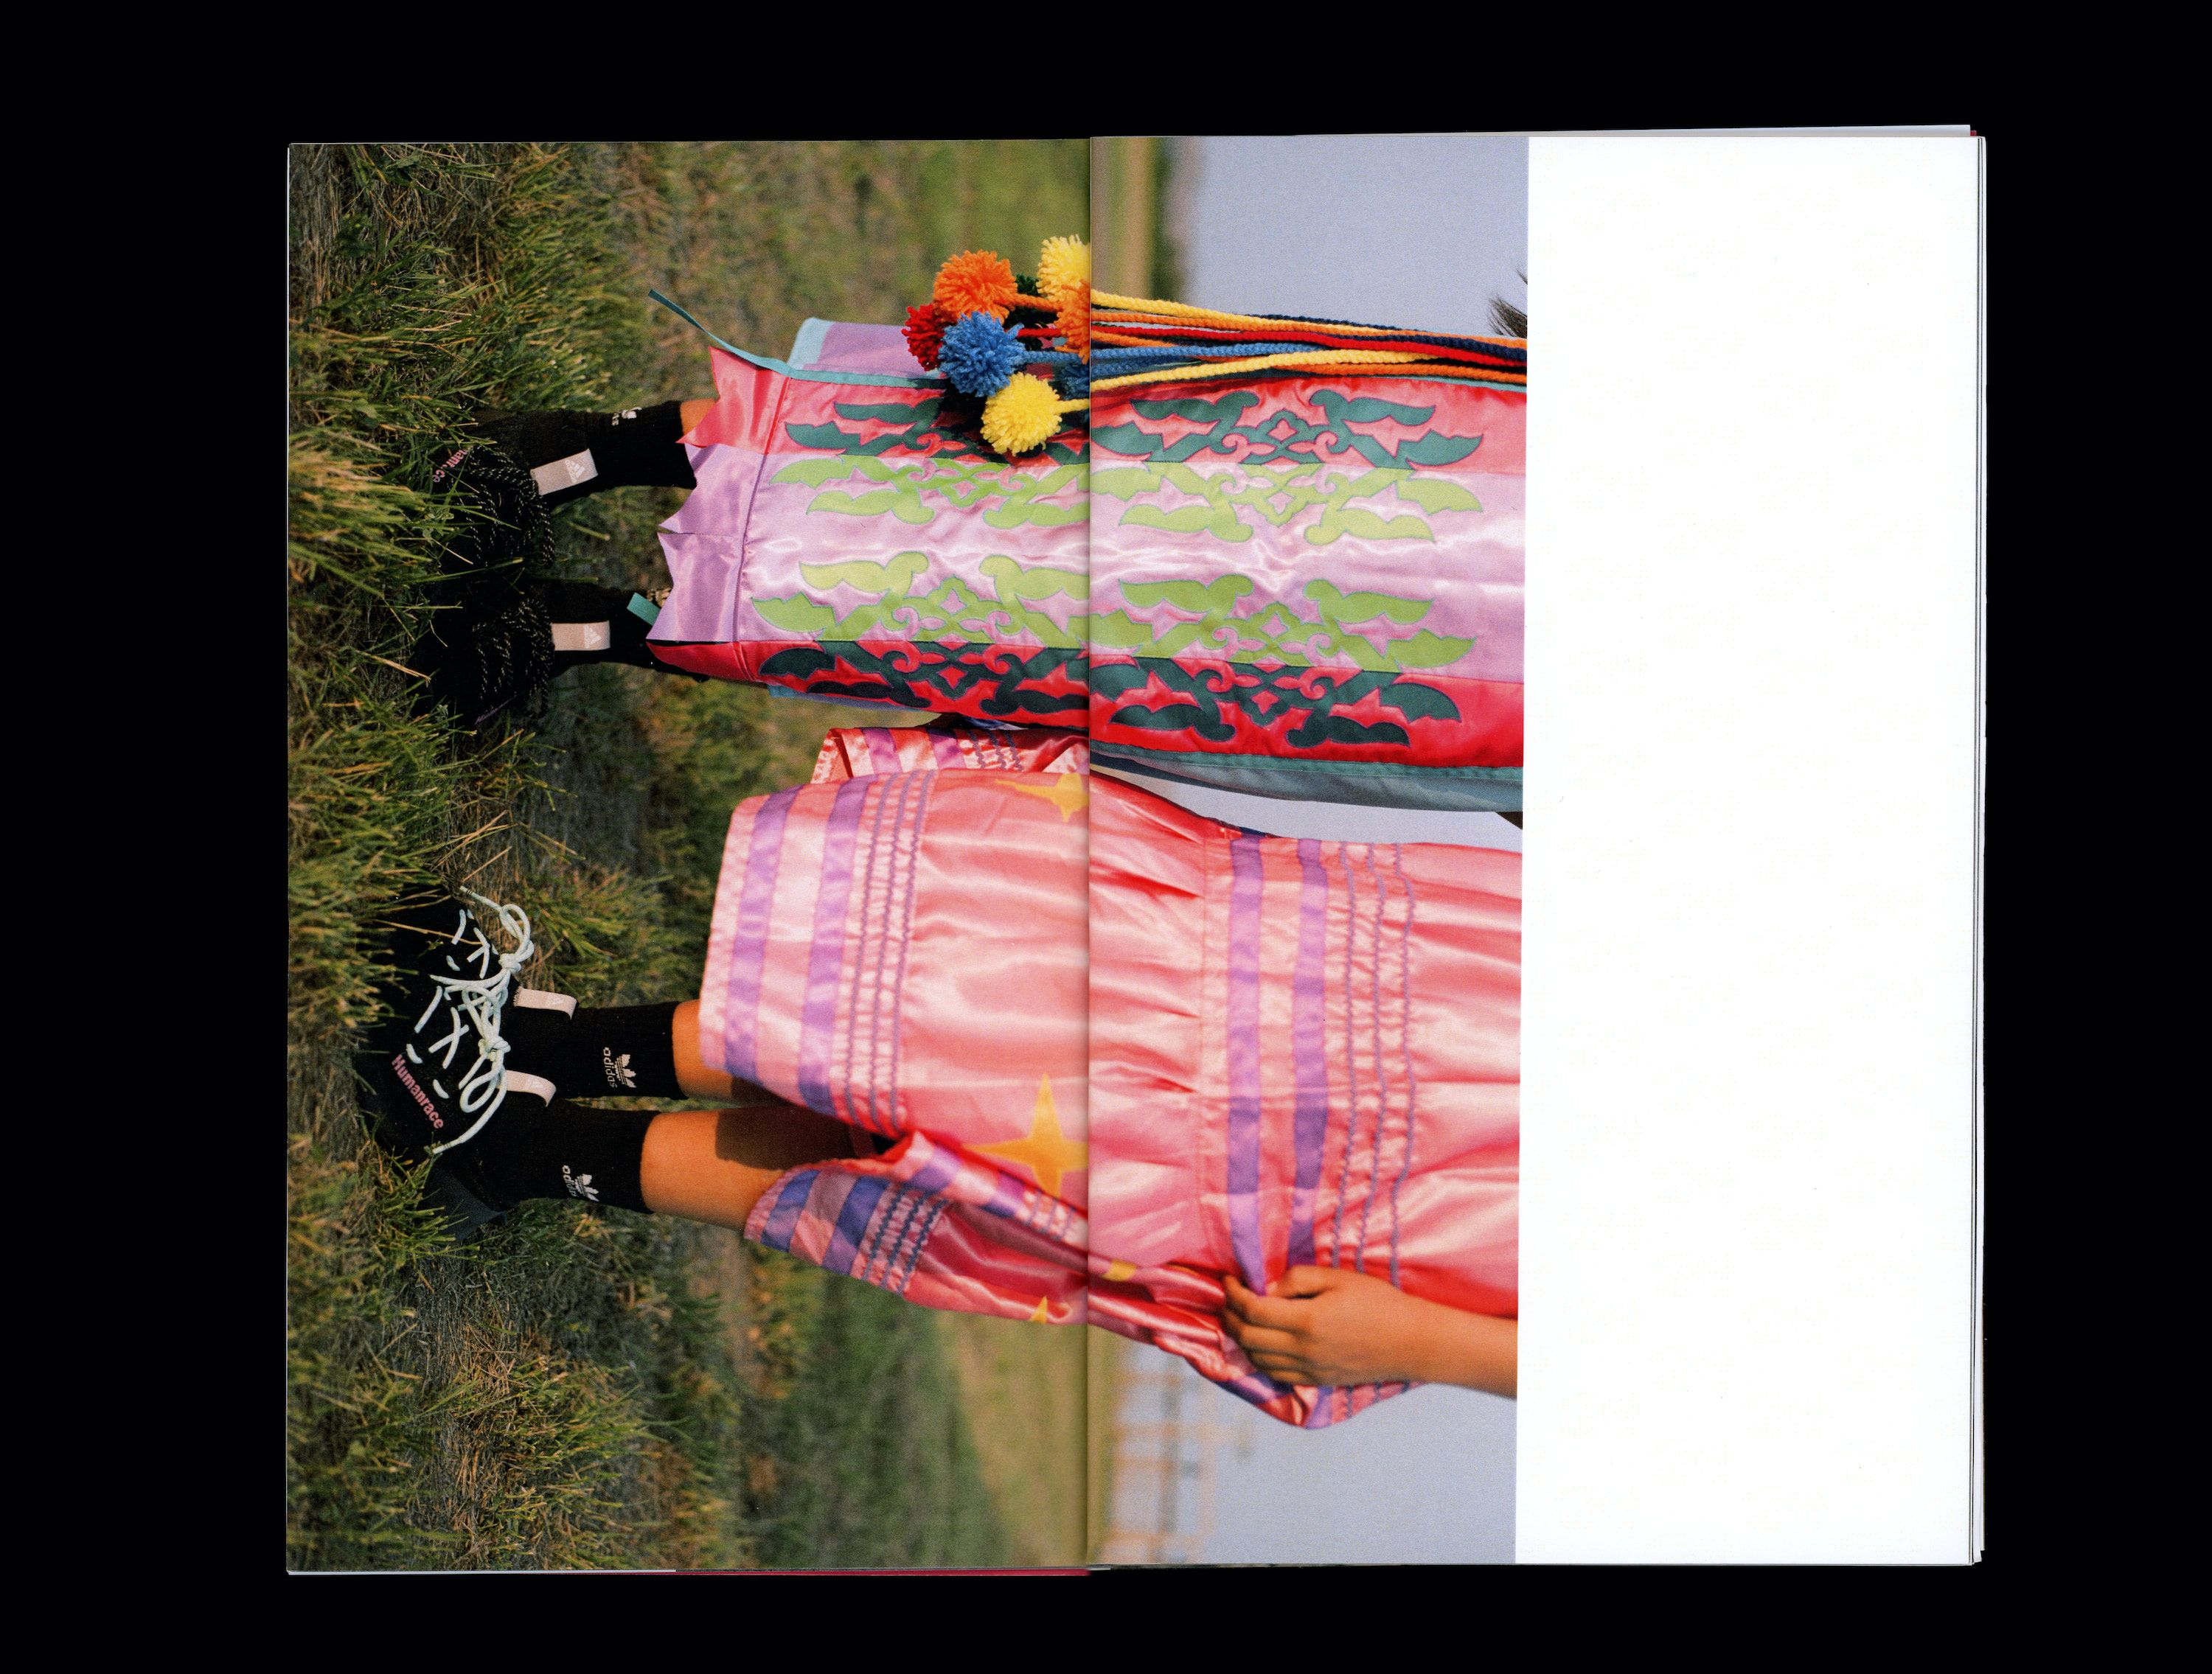 Close up photograph in book of Jonna & ToiRee Brady wearing traditional Native clothing and Sičhona shoes